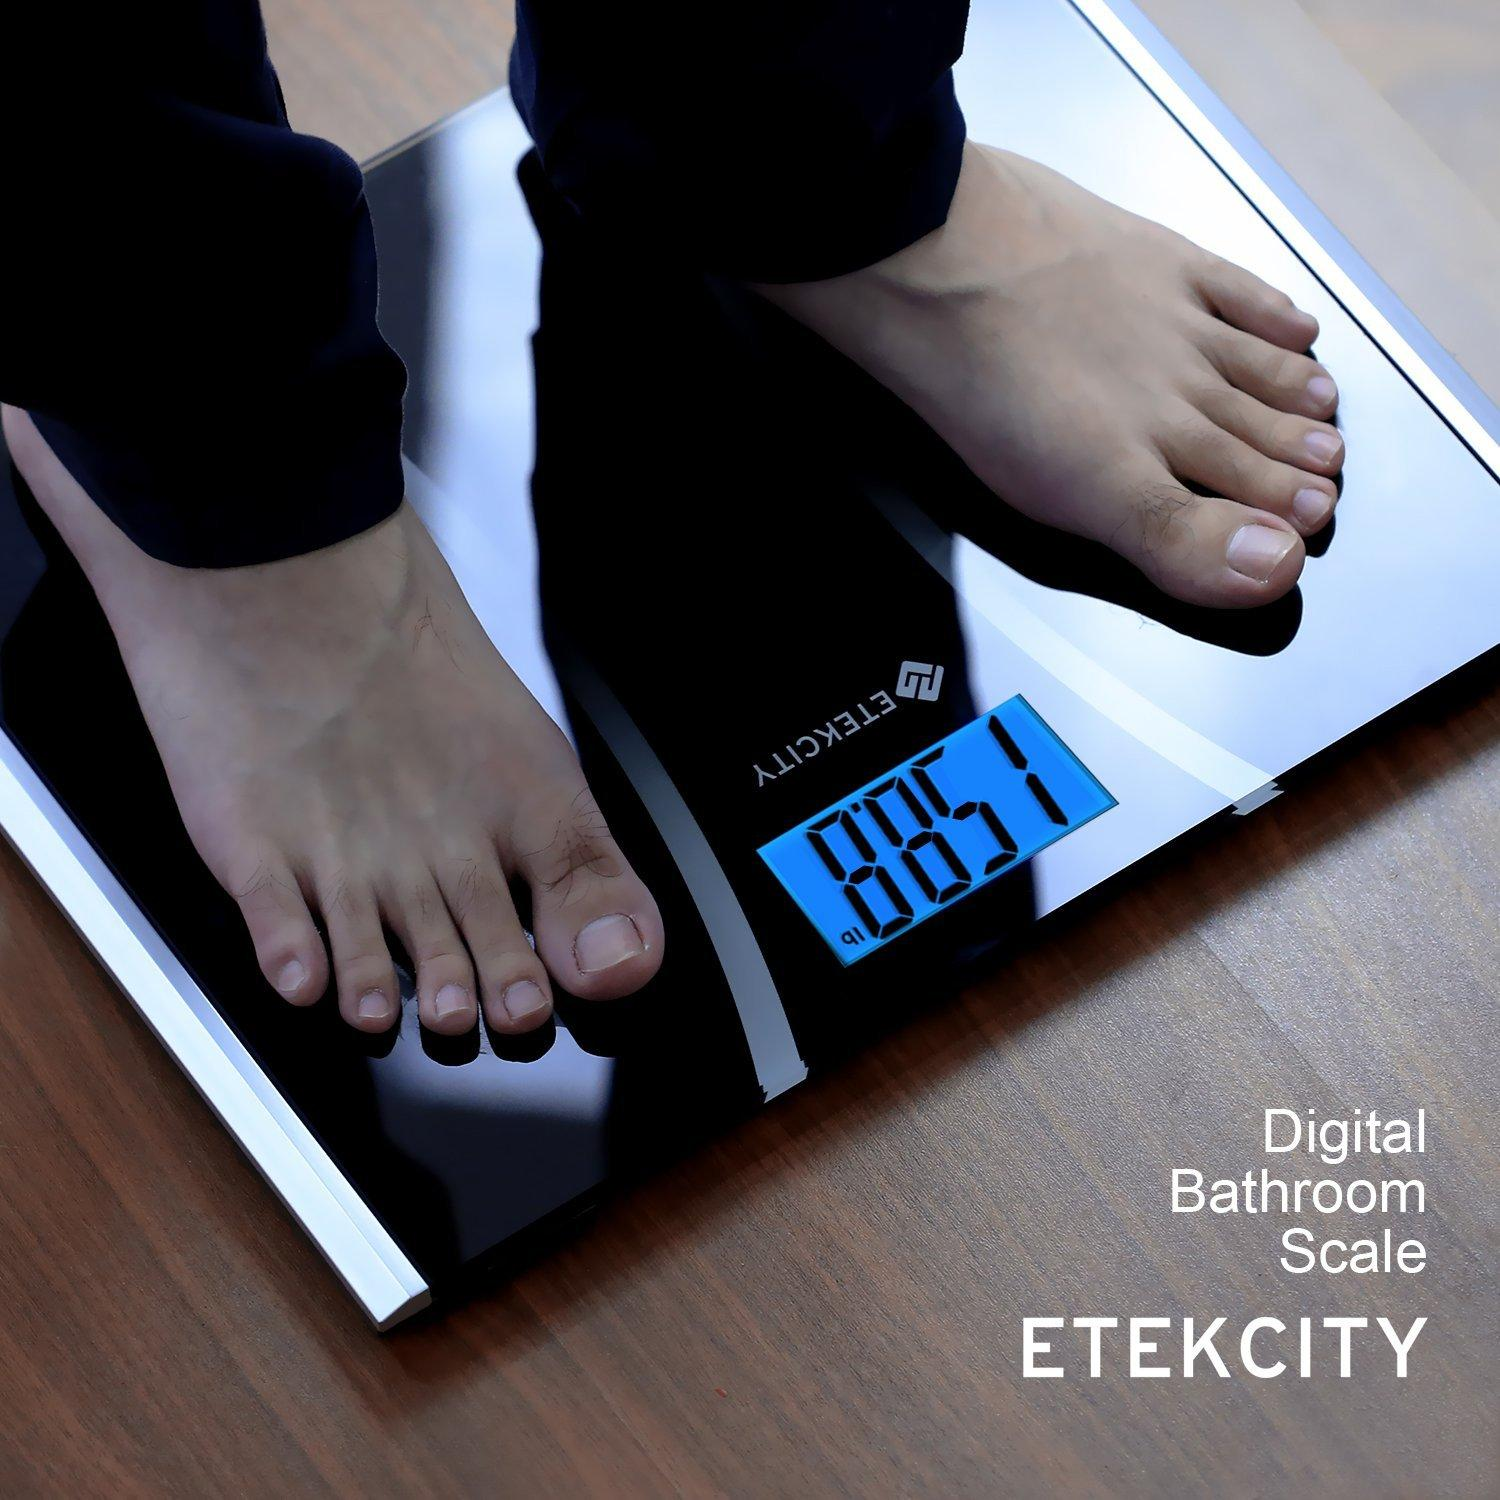 Etekcity Digital Body Weight Bathroom Scale, 440lb /200kg